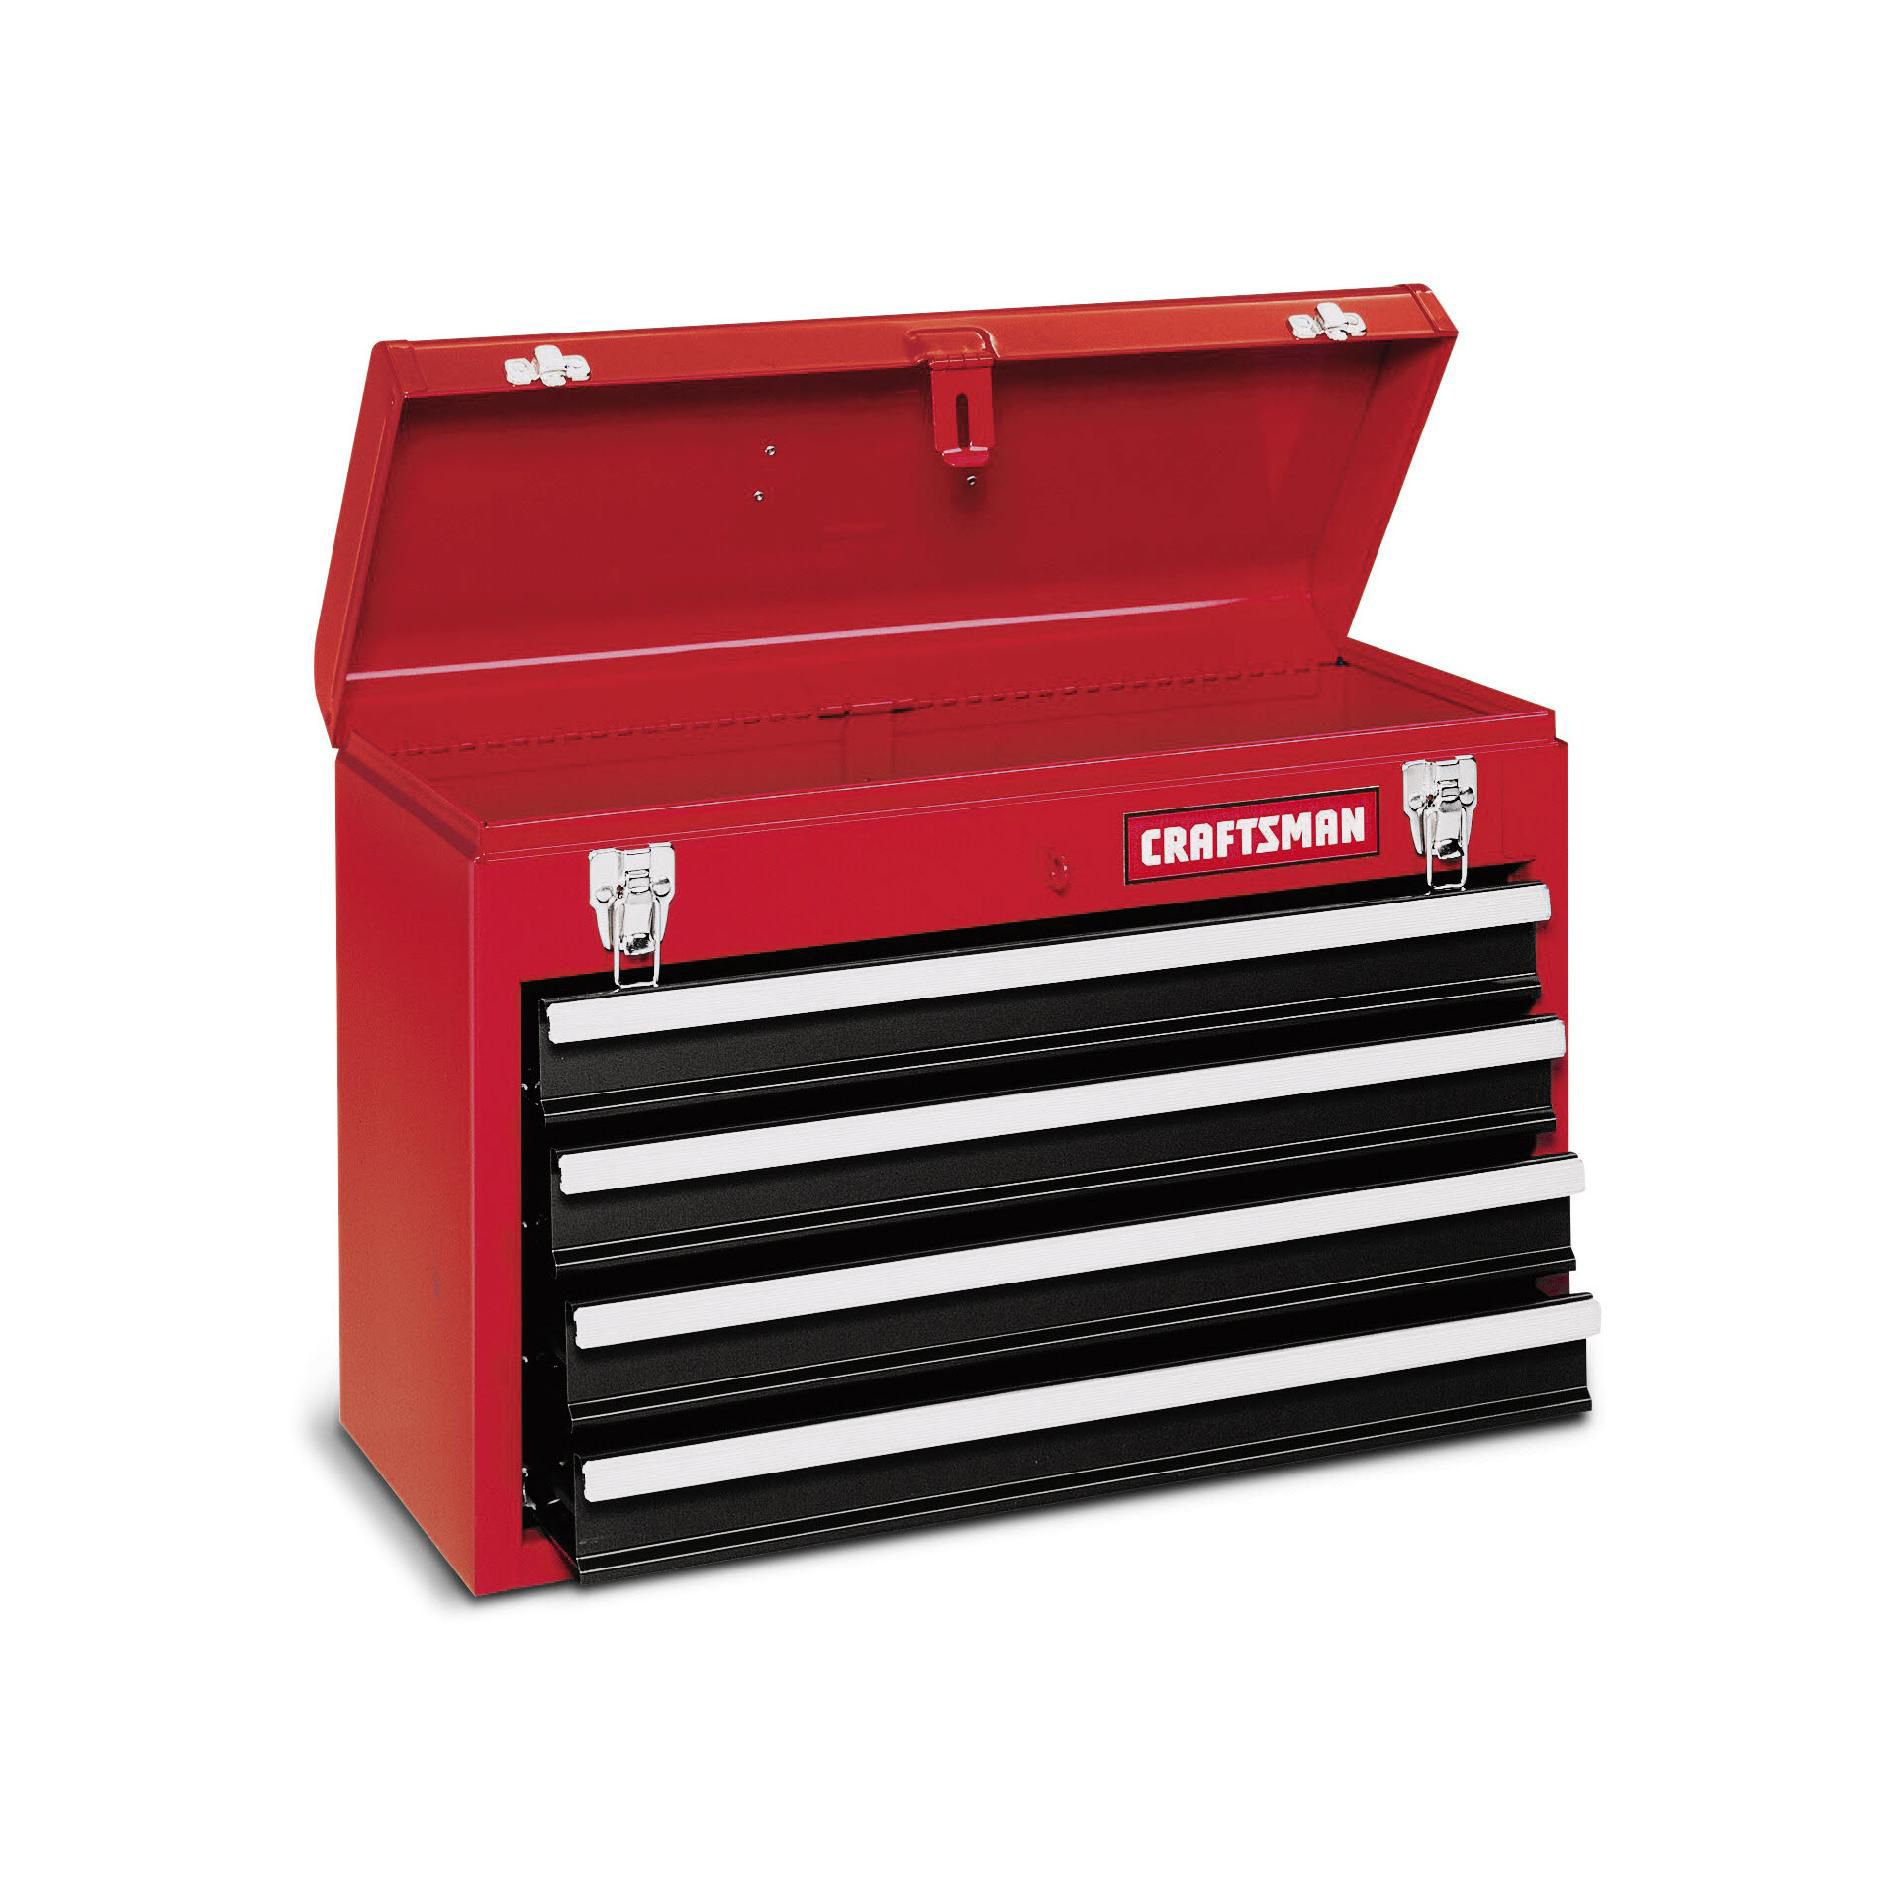 Craftsman 4-Drawer Metal Portable Chest - Red/Black